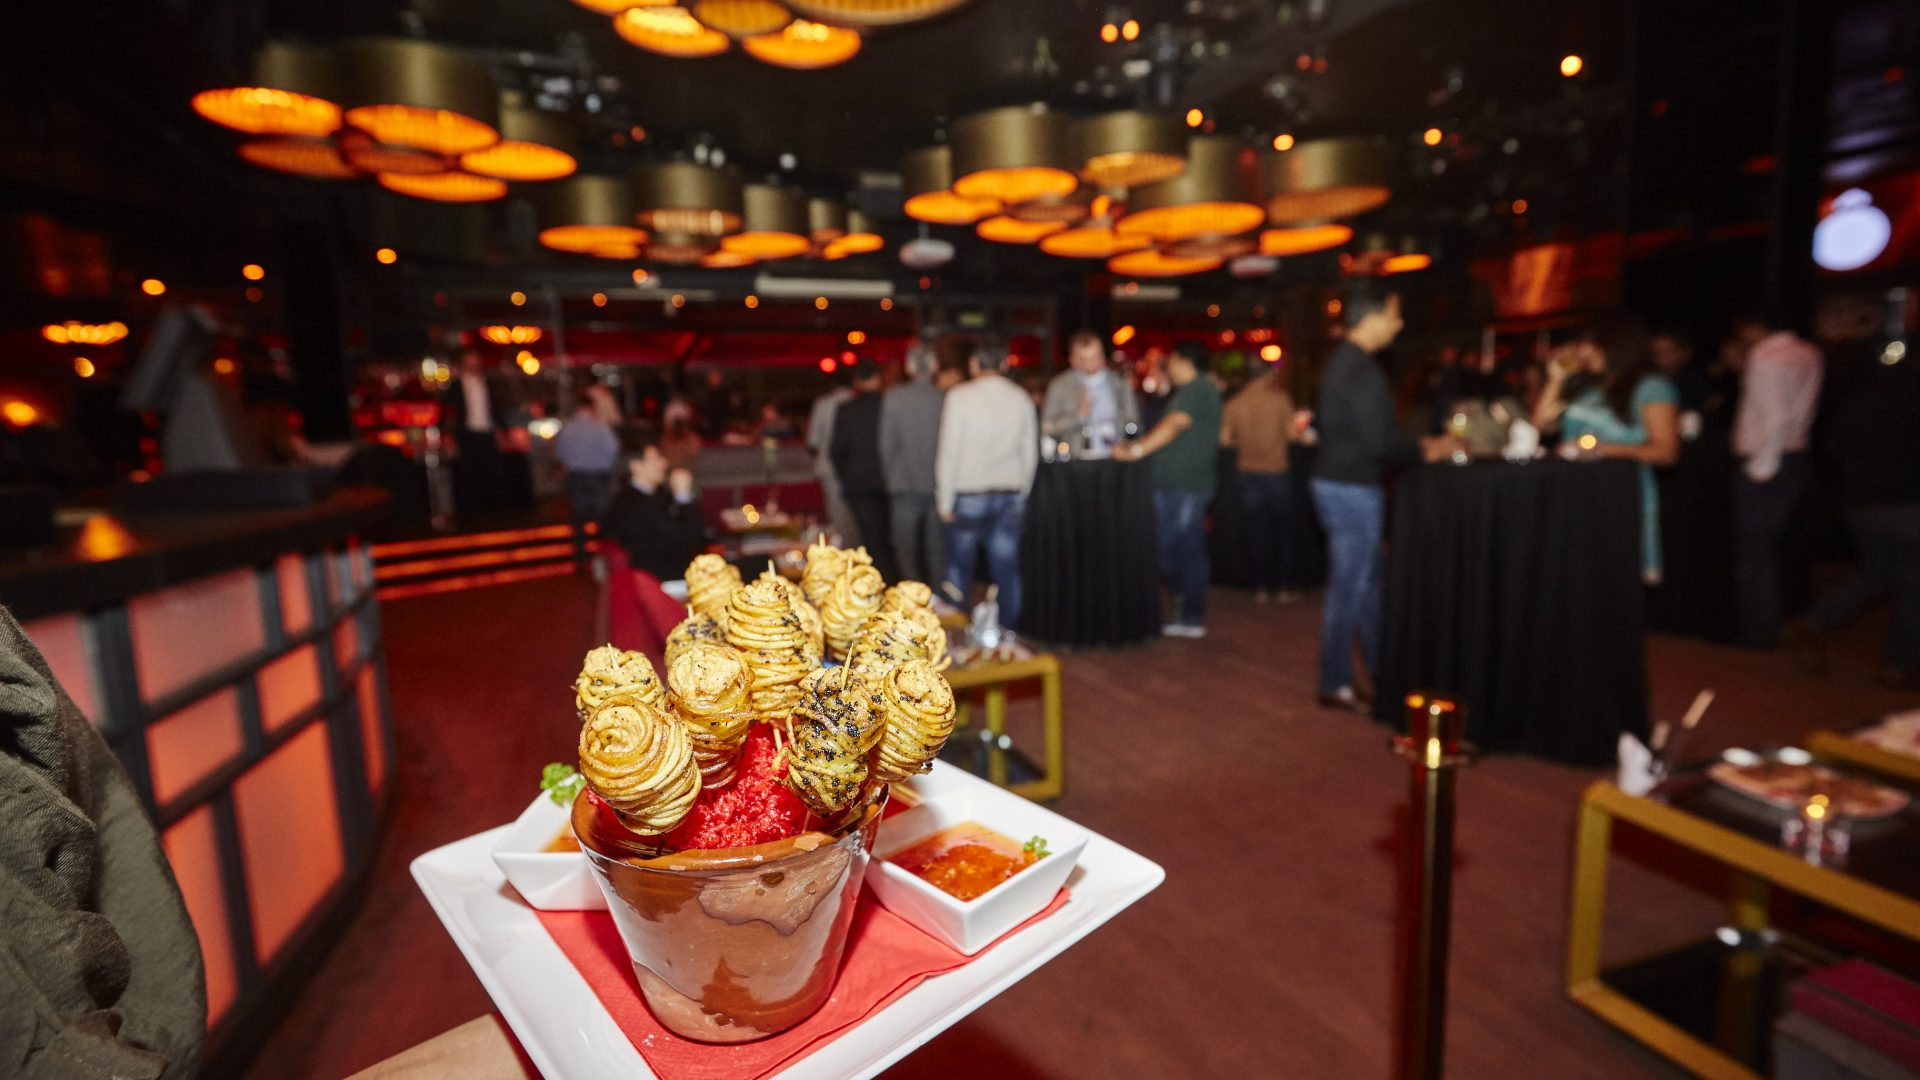 Snacks being served at the evening party for Karix' clients during MWC 2019